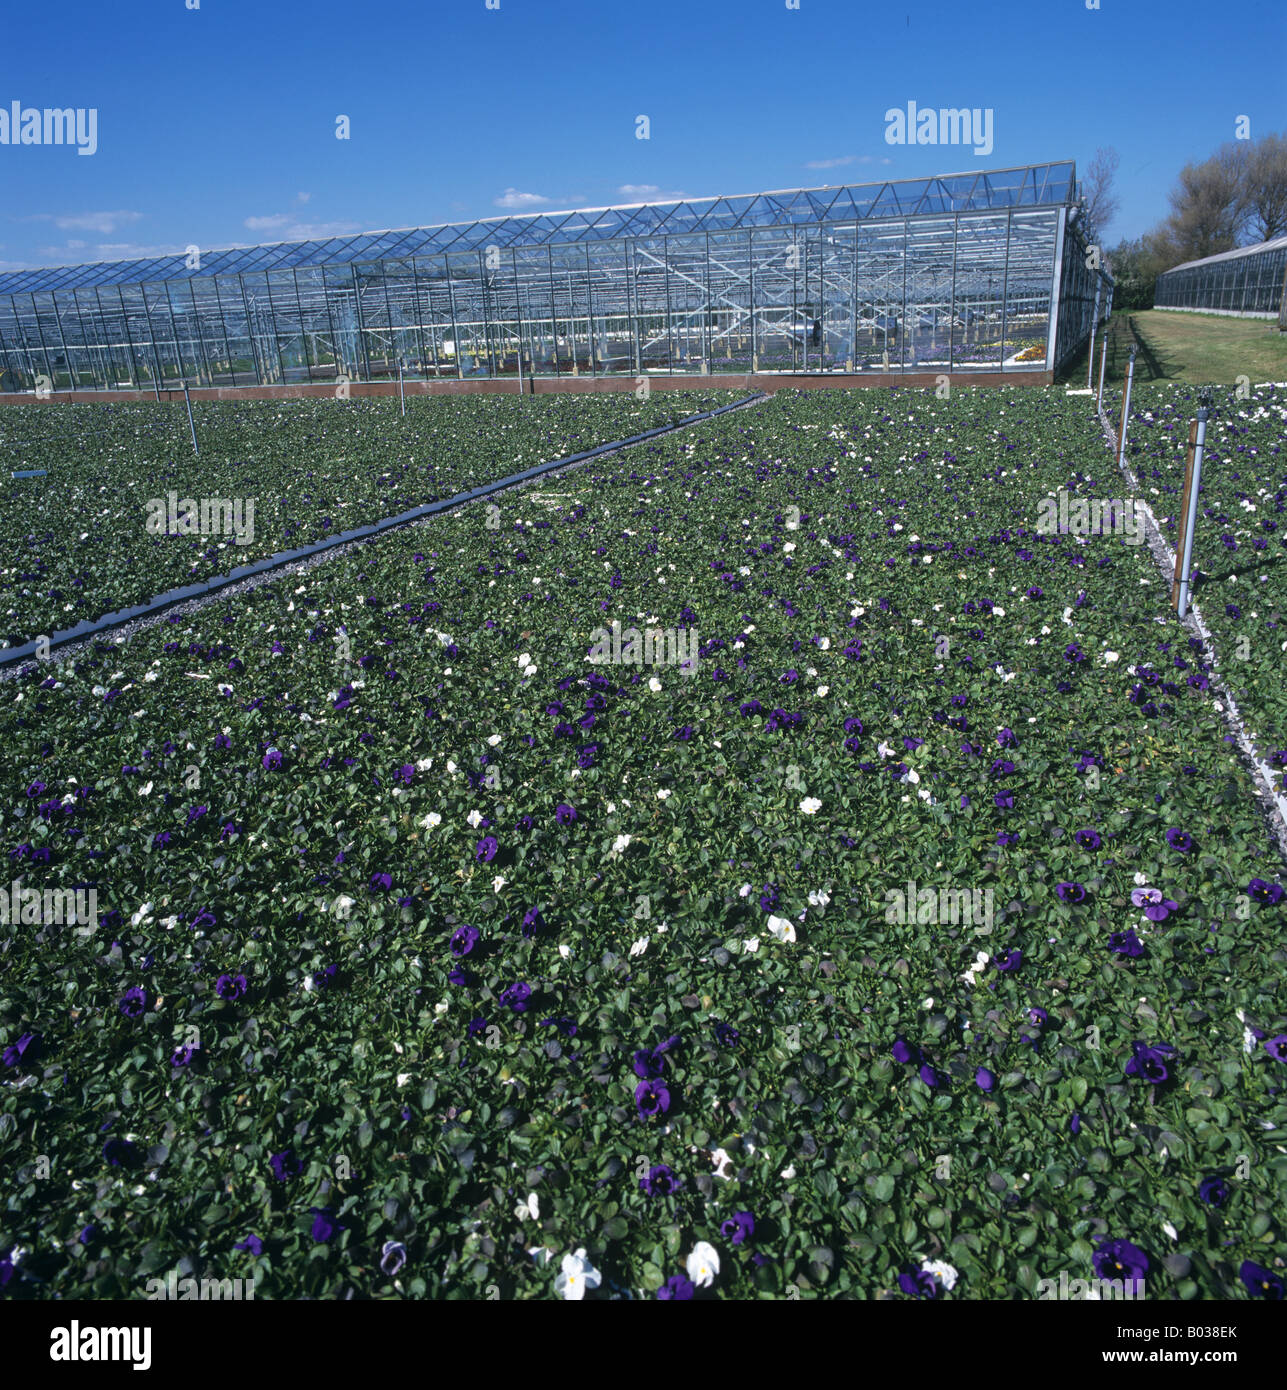 Trays of pansies for retail outdoors in a nursery for ornamental plants - Stock Image